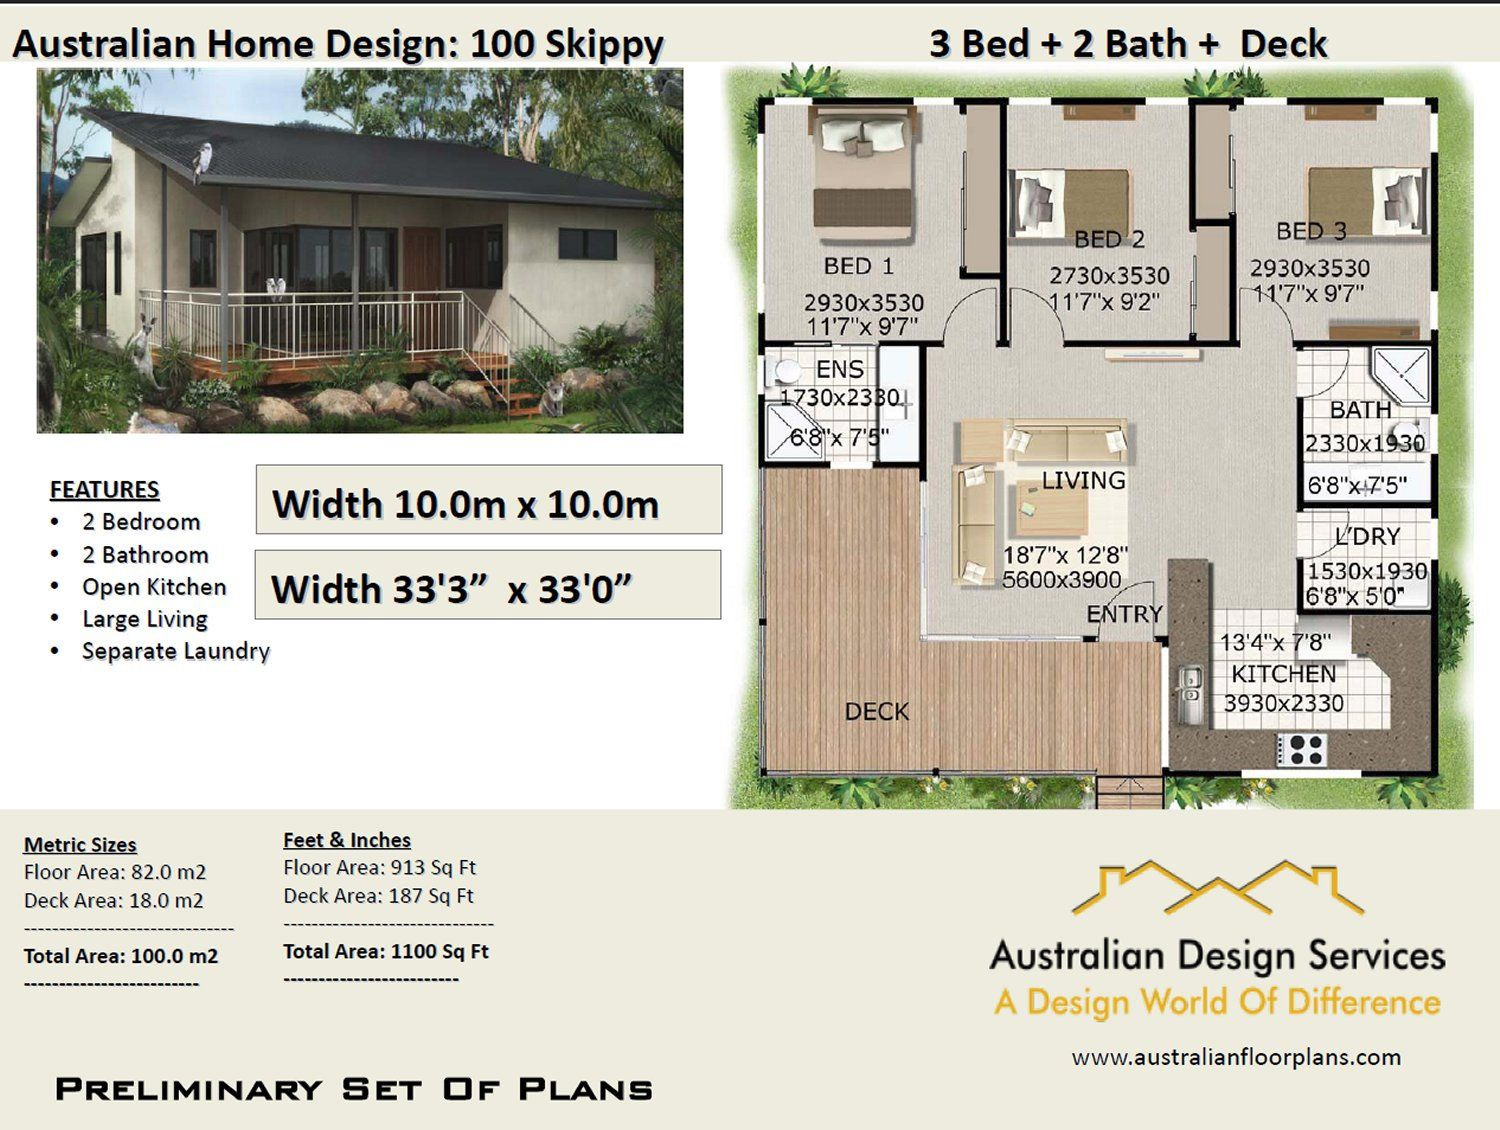 3 Bedroom Country Style House Plan Australia 1100 Sq Foot Etsy House Plans Australia Country Style House Plans Country House Plans